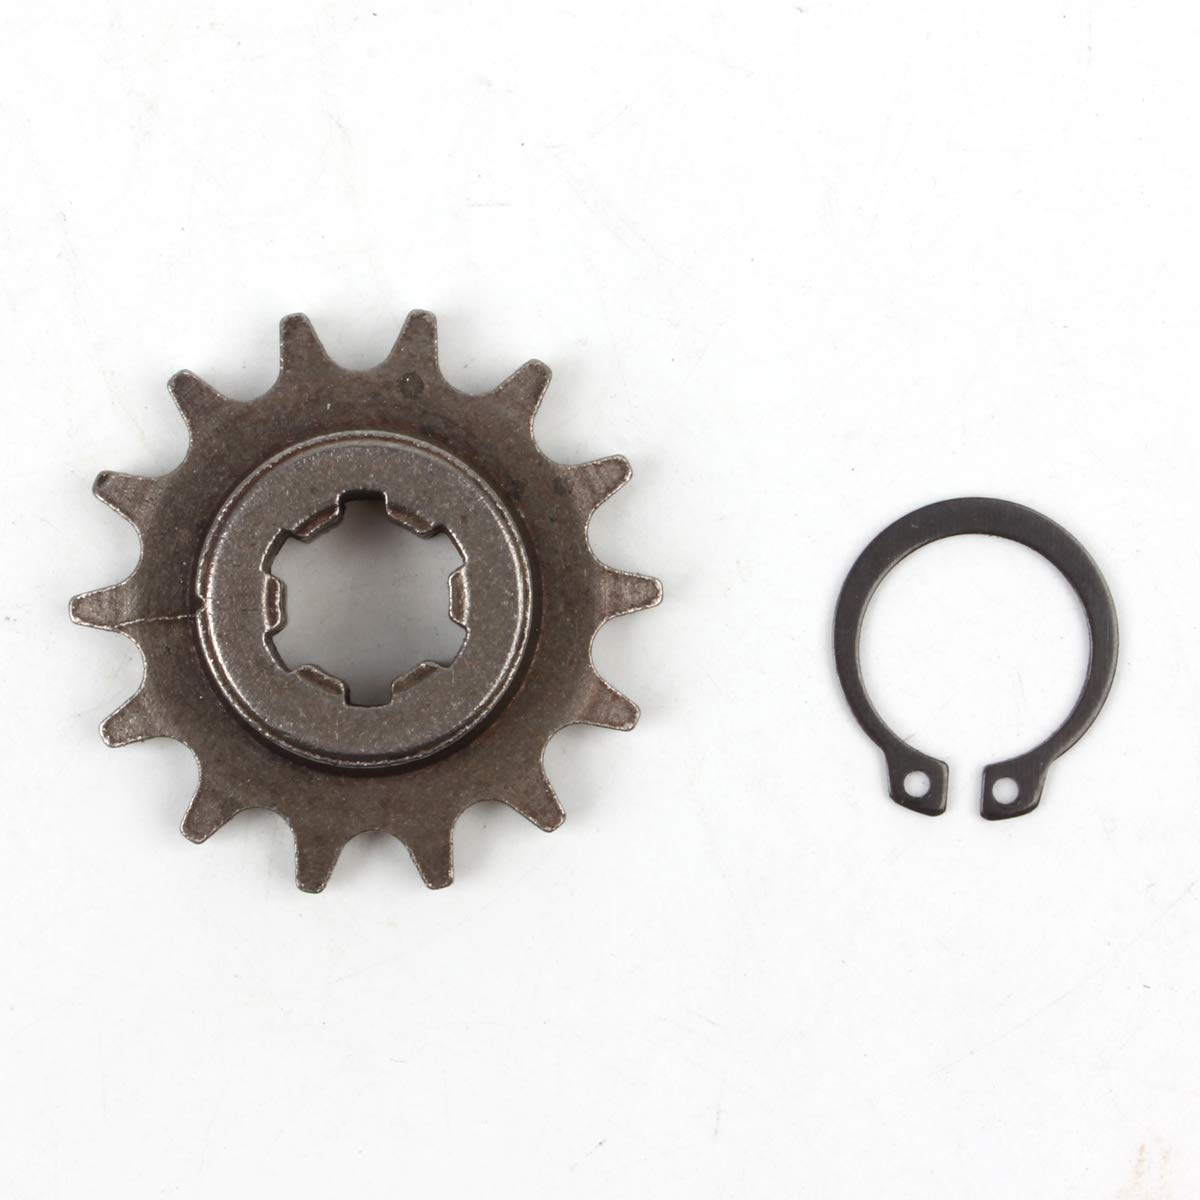 PRO CAKEN T8F 14T Front Pinion Clutch Gear Box Chain Sprocket 47cc 49cc Dirt Bike Minimoto T8F Pitch 14 Teeth DirtBikeClub